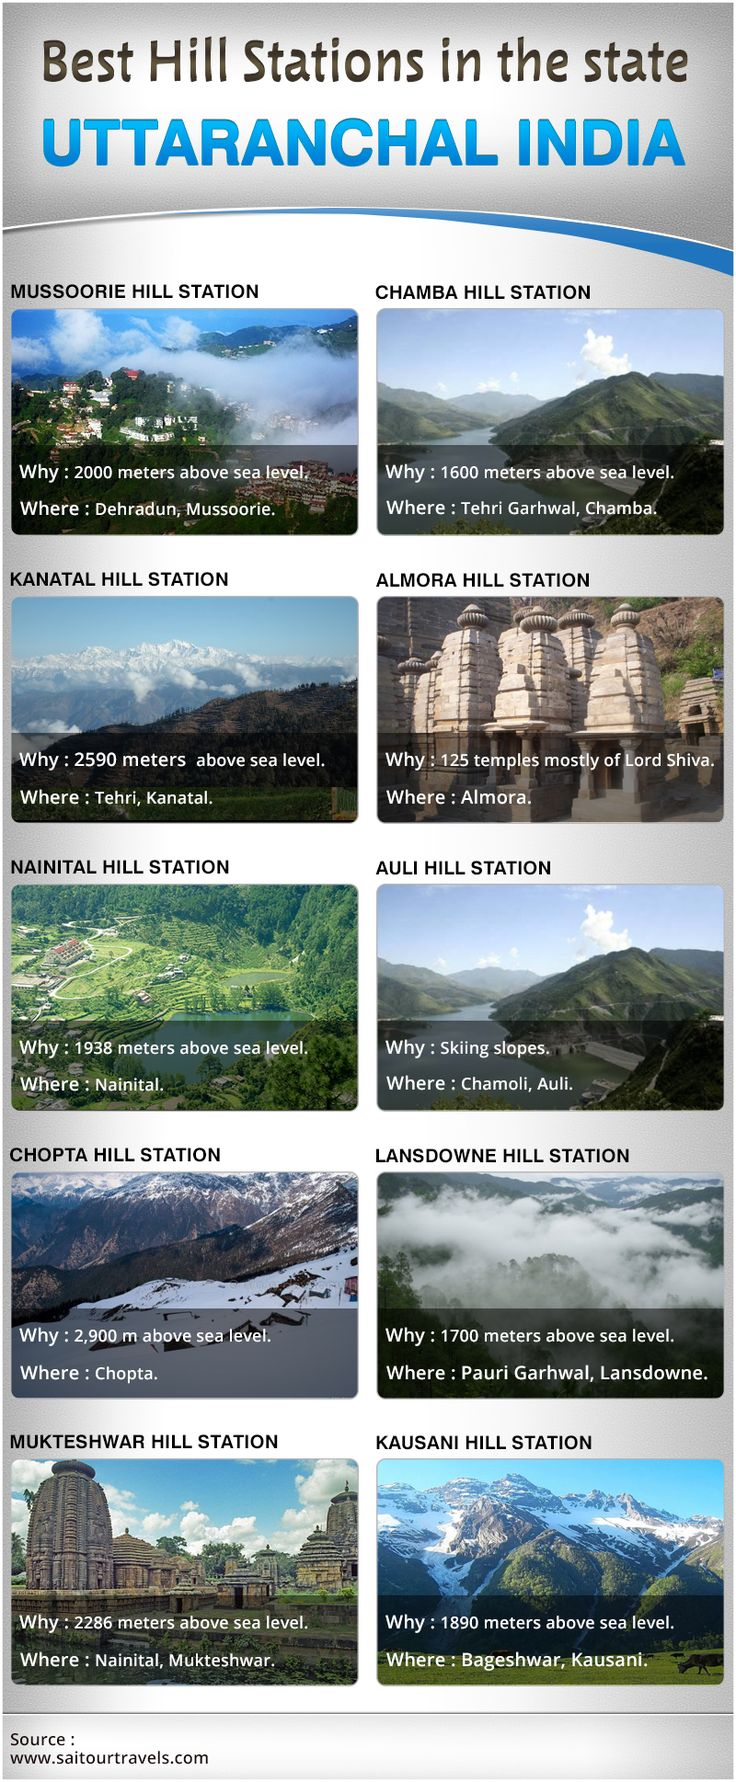 Best Hill Stations In the State Uttaranchal, India #Travel #Tour #Tourism #India